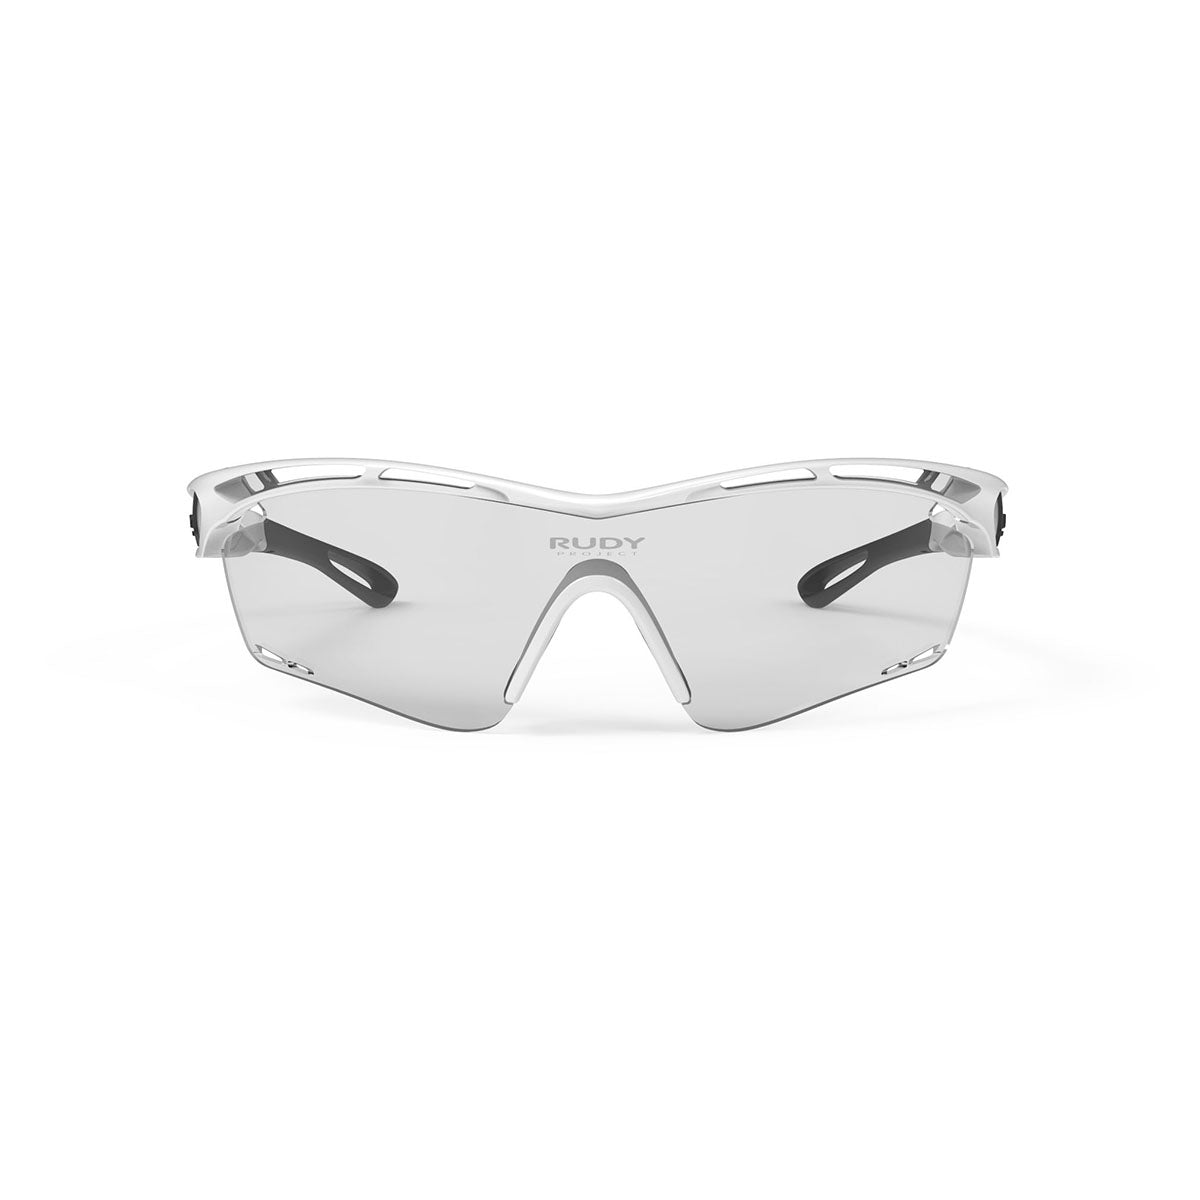 Rudy Project - Tralyx - frame color: White Gloss - lens color: ImpactX-2 Photochromic Clear to Black - photo angle: Front View Variant Hover Image